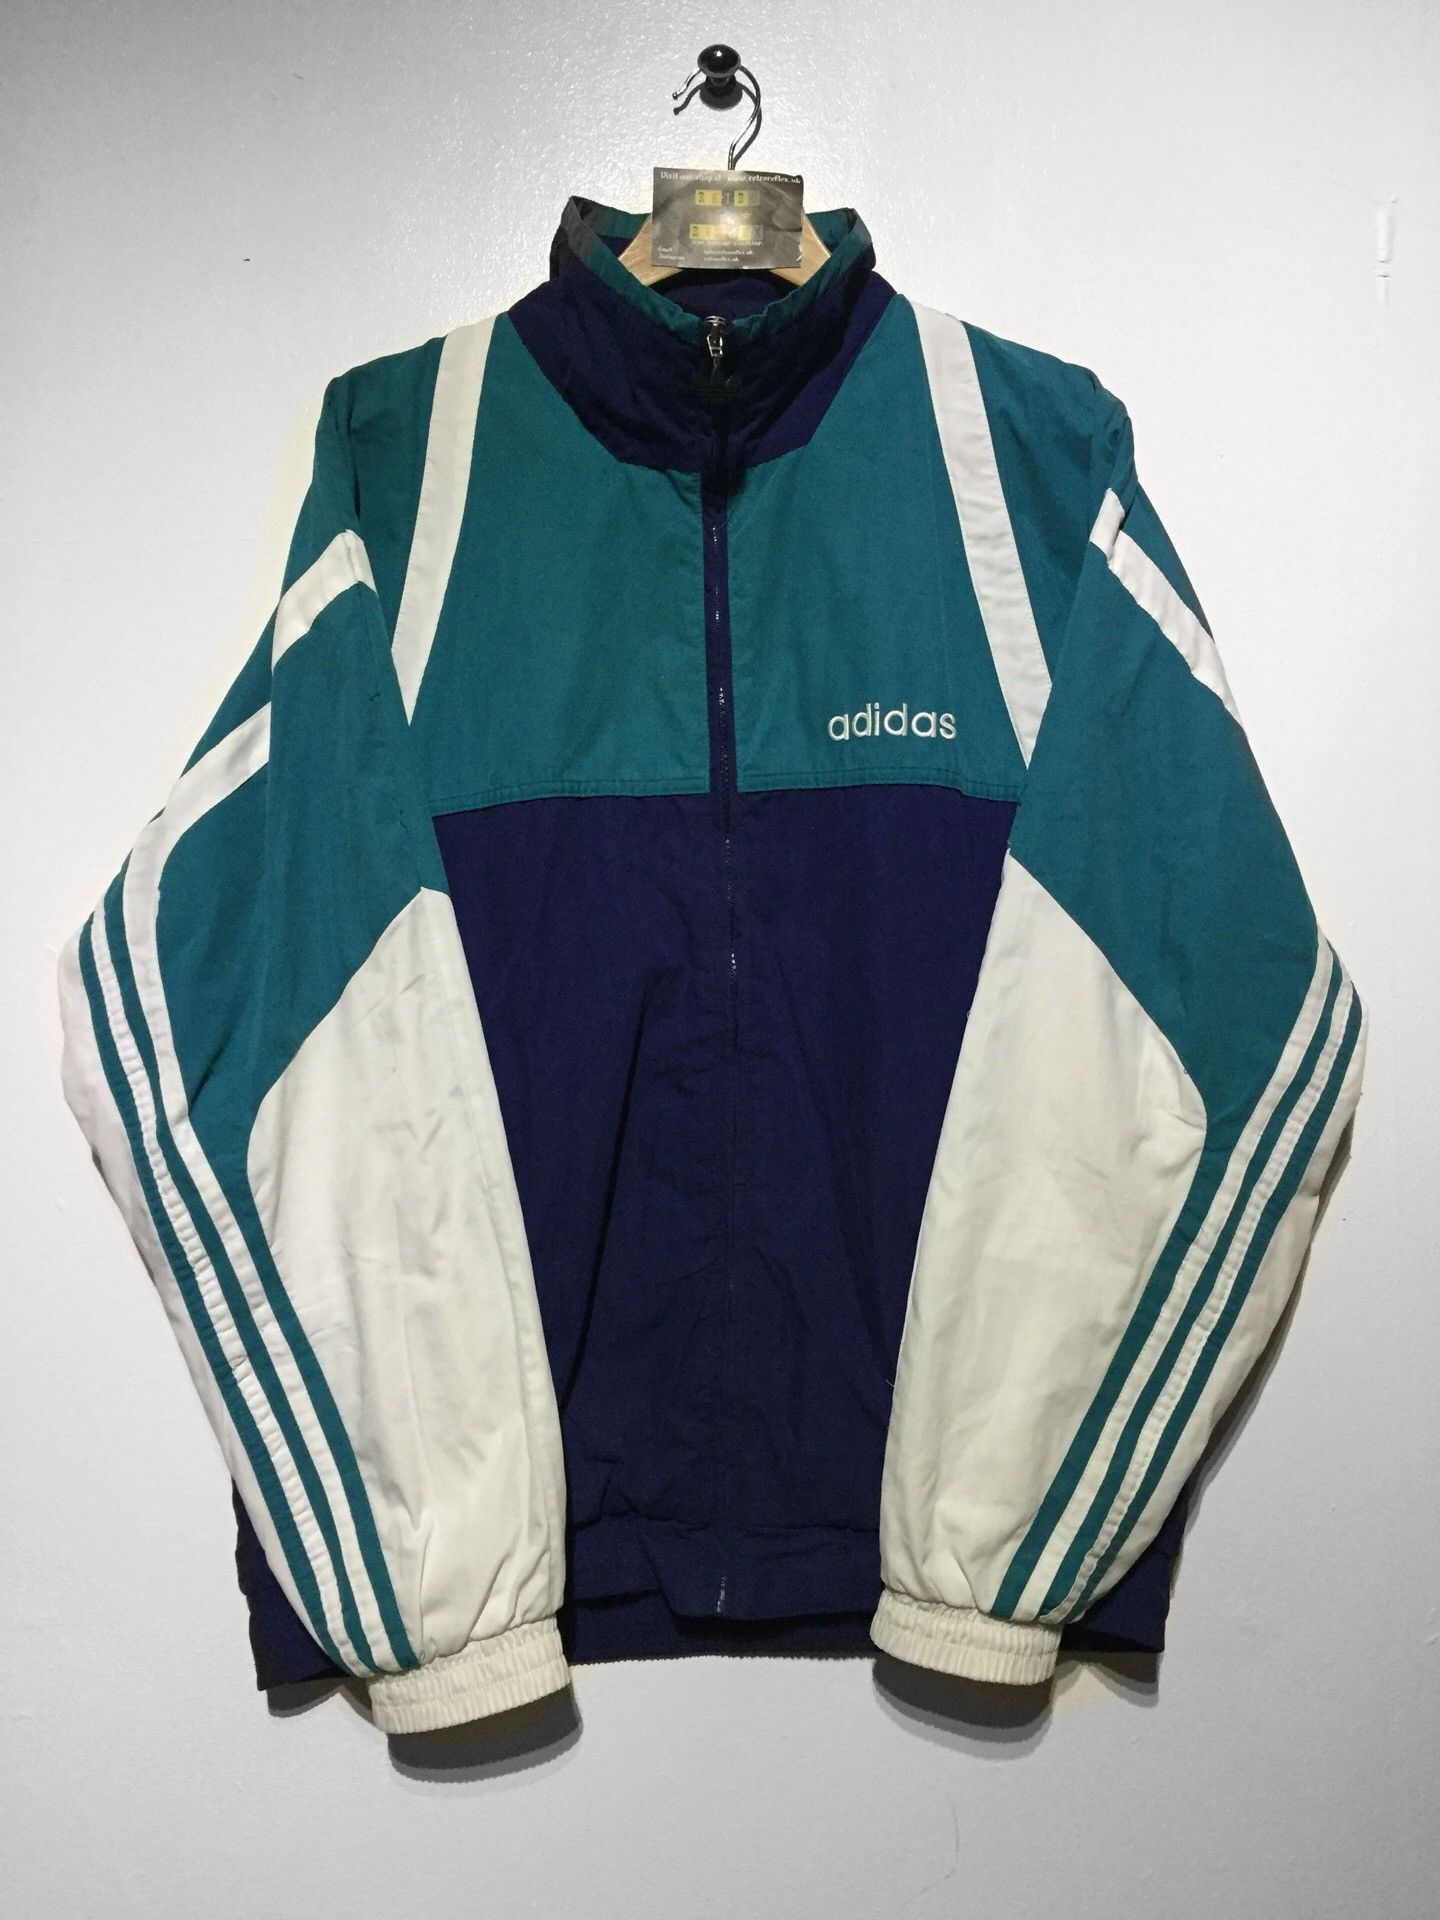 Adidas Jacket Size D7 Large But Fits Oversized Adidas